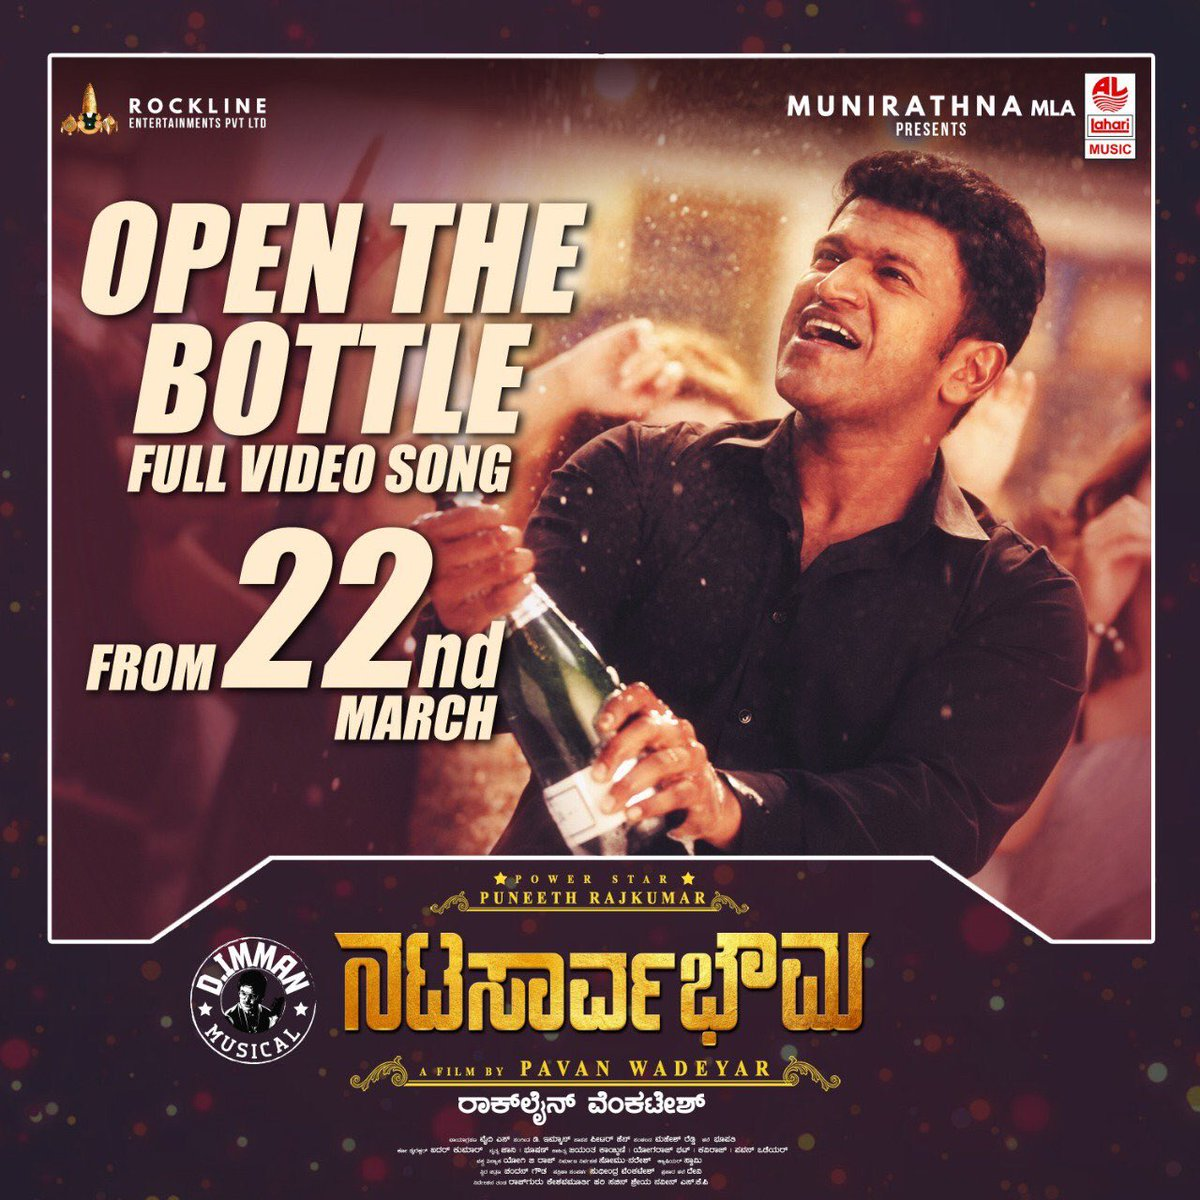 #OpentheBottle Video song from #Natasaarvabhowma makes its online presence from 22nd March! On @YouTubeIndia from @LahariMusic ! Get set! @PuneethRajkumar @PavanWadeyar @anupamahere @RachitaRamDQ @RocklineEnt Praise God!